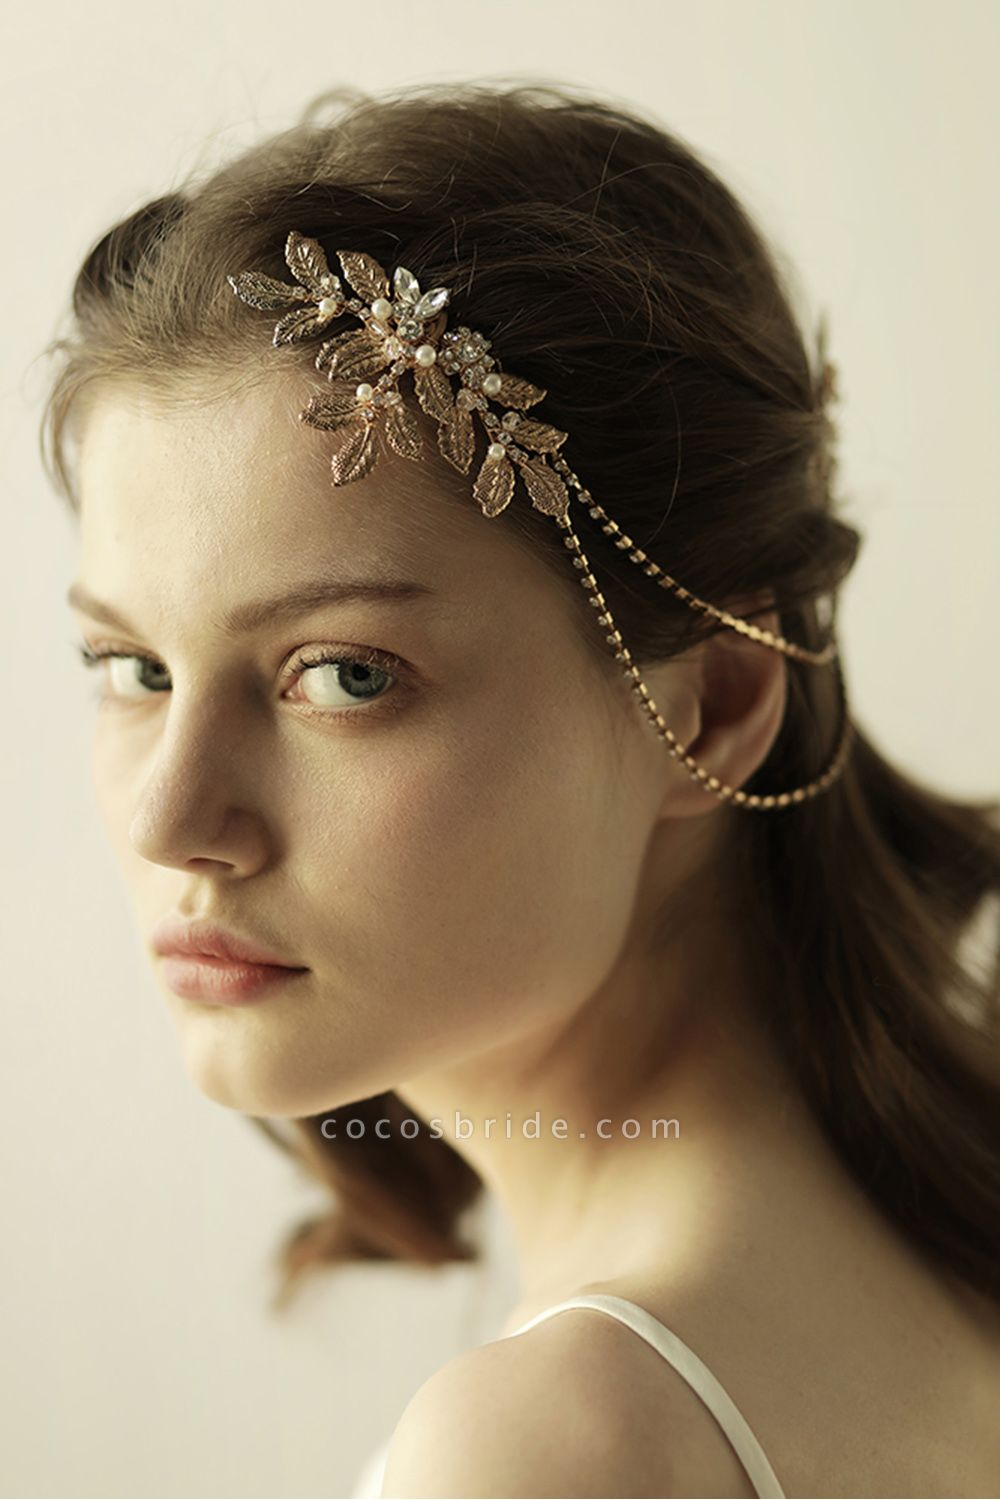 Lovely Alloy&Rhinestone Party Combs-Barrettes Headpiece with Imitation Pearls